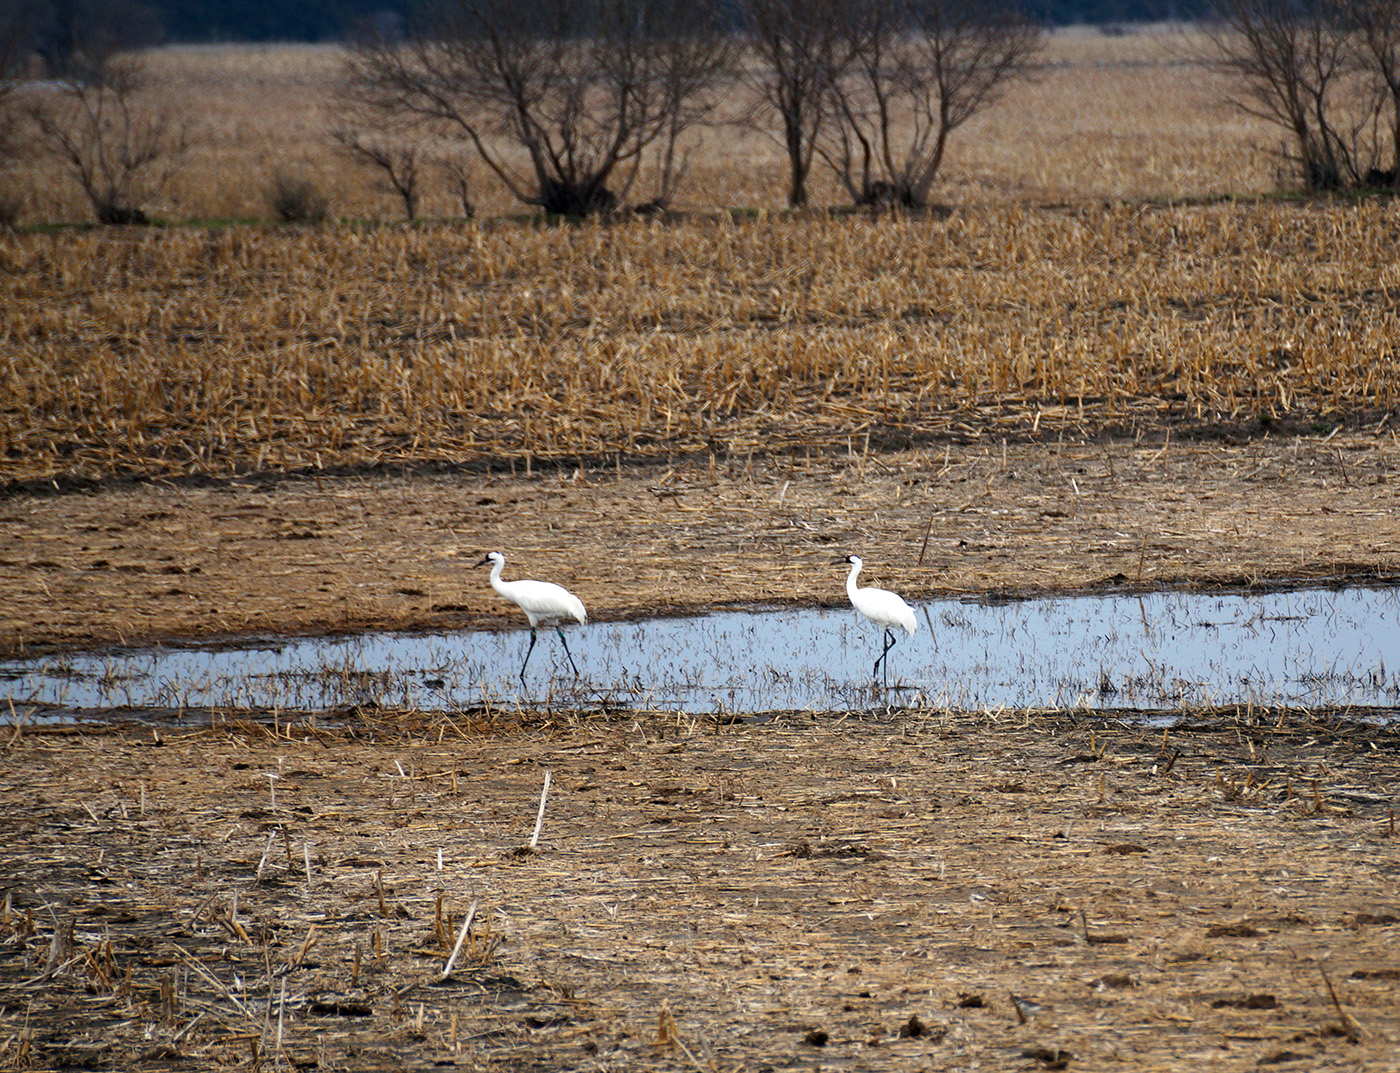 Endangered whooping cranes are migrating earlier in the spring and later in the fall in association with recorded higher average temperatures, according to a newly published study by two researchers with the School of Natural Resources at the University of Nebraska-Lincoln and the Nebraska Game and Parks Commission.